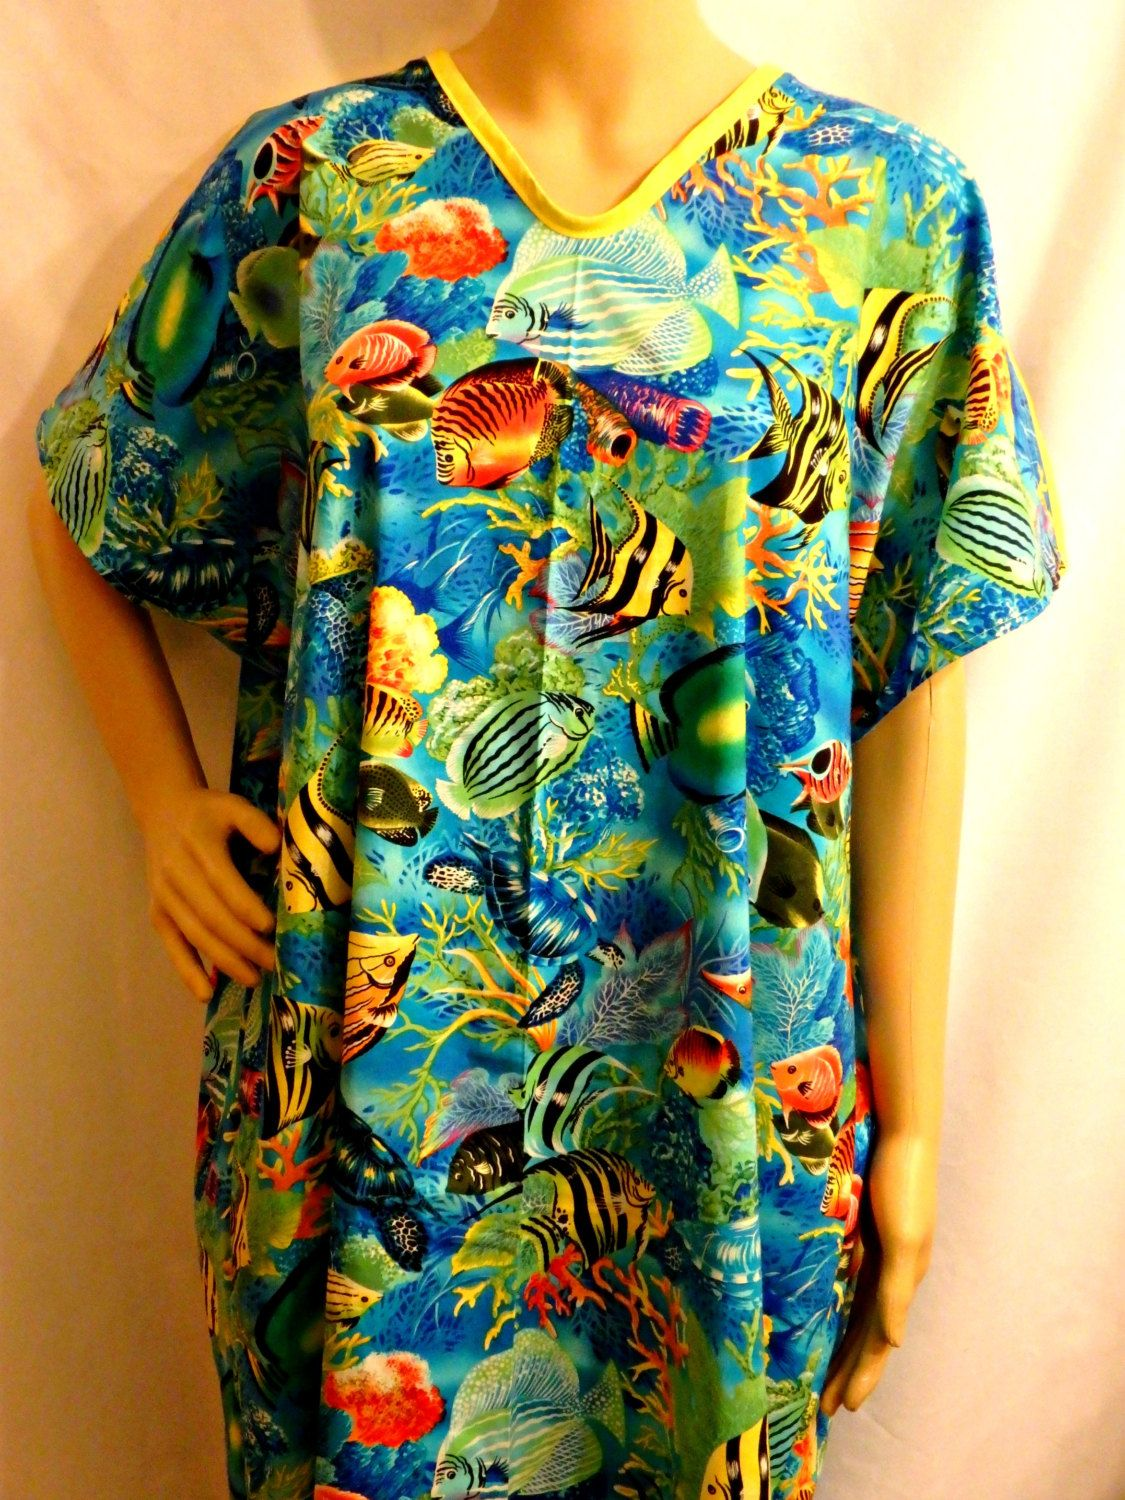 Cotton IV Hospital Gown for Bed bound Fits up to Plus Size TROPICAL ...